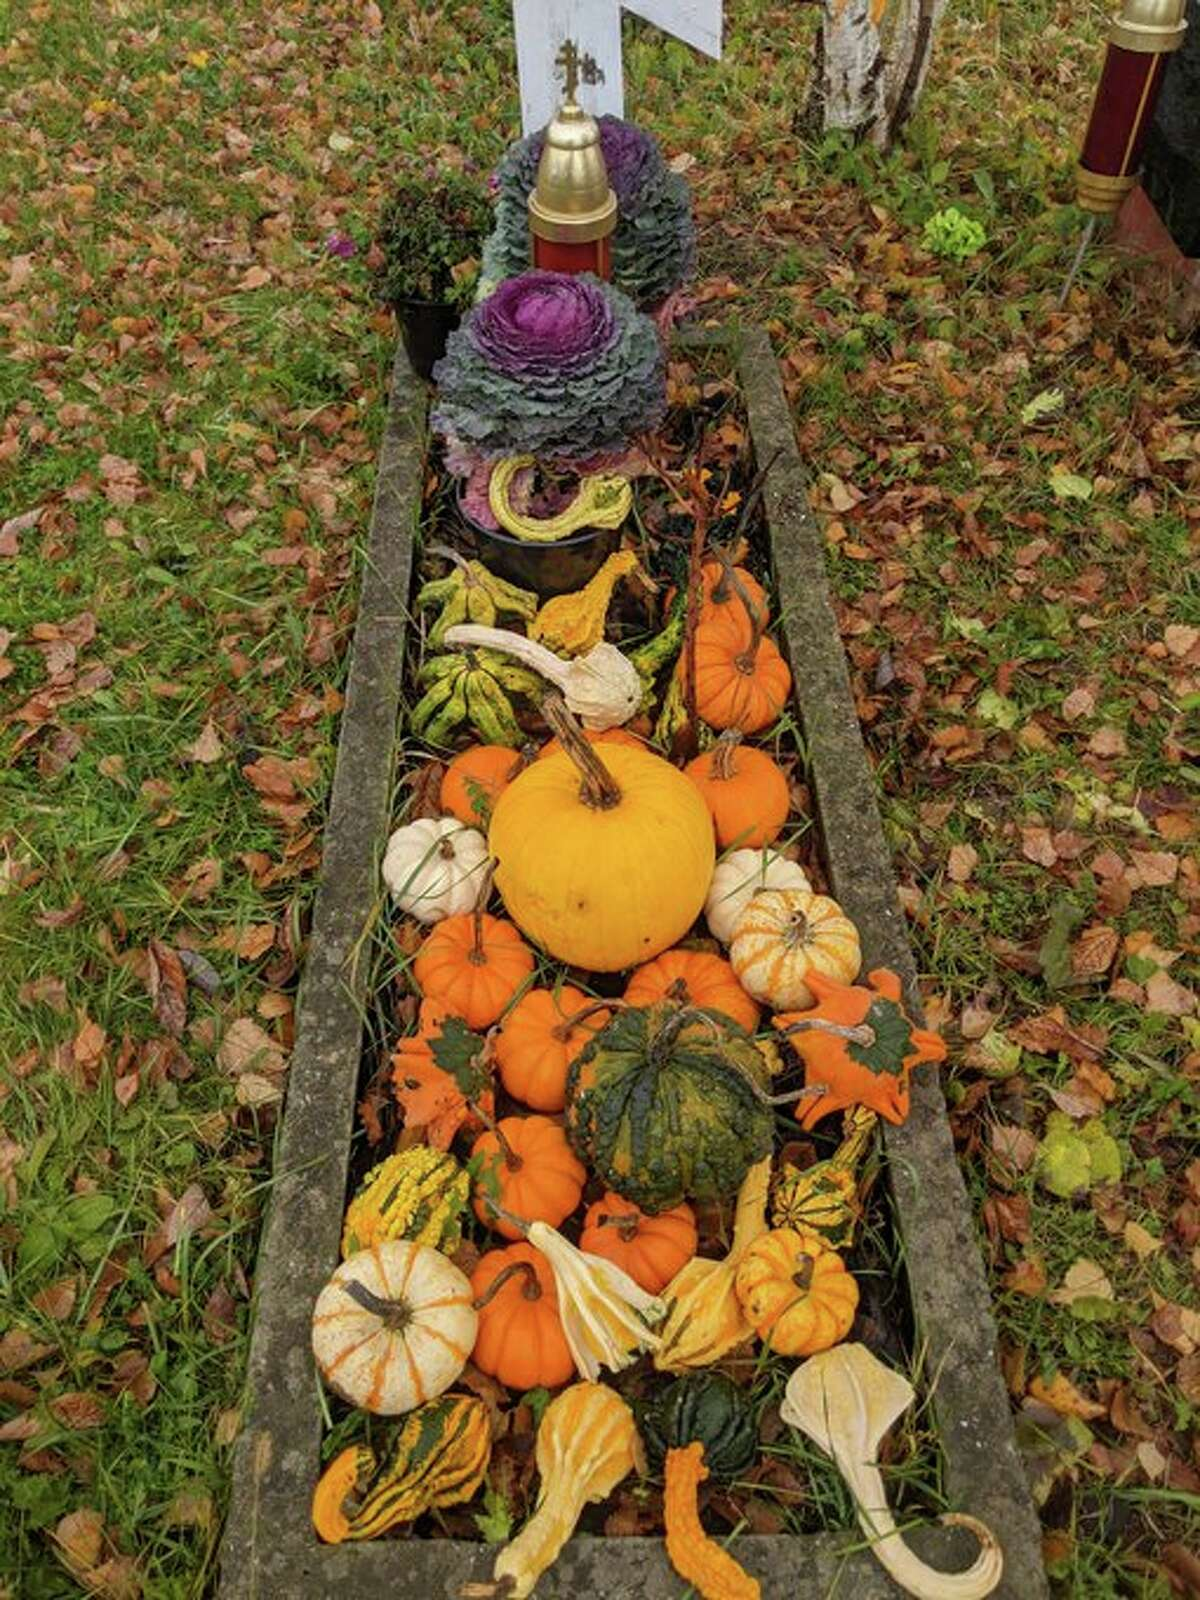 The distinctive Russian Orthodox crosses are at the head of each grave. Some are wood and some are stone. The cemetery is in the middle of beautiful farmland, down the road from the cathedral and monastery. Many graves had seasonal adornments such as gourds, pumpkins, winter cabbage and colorful leaves.